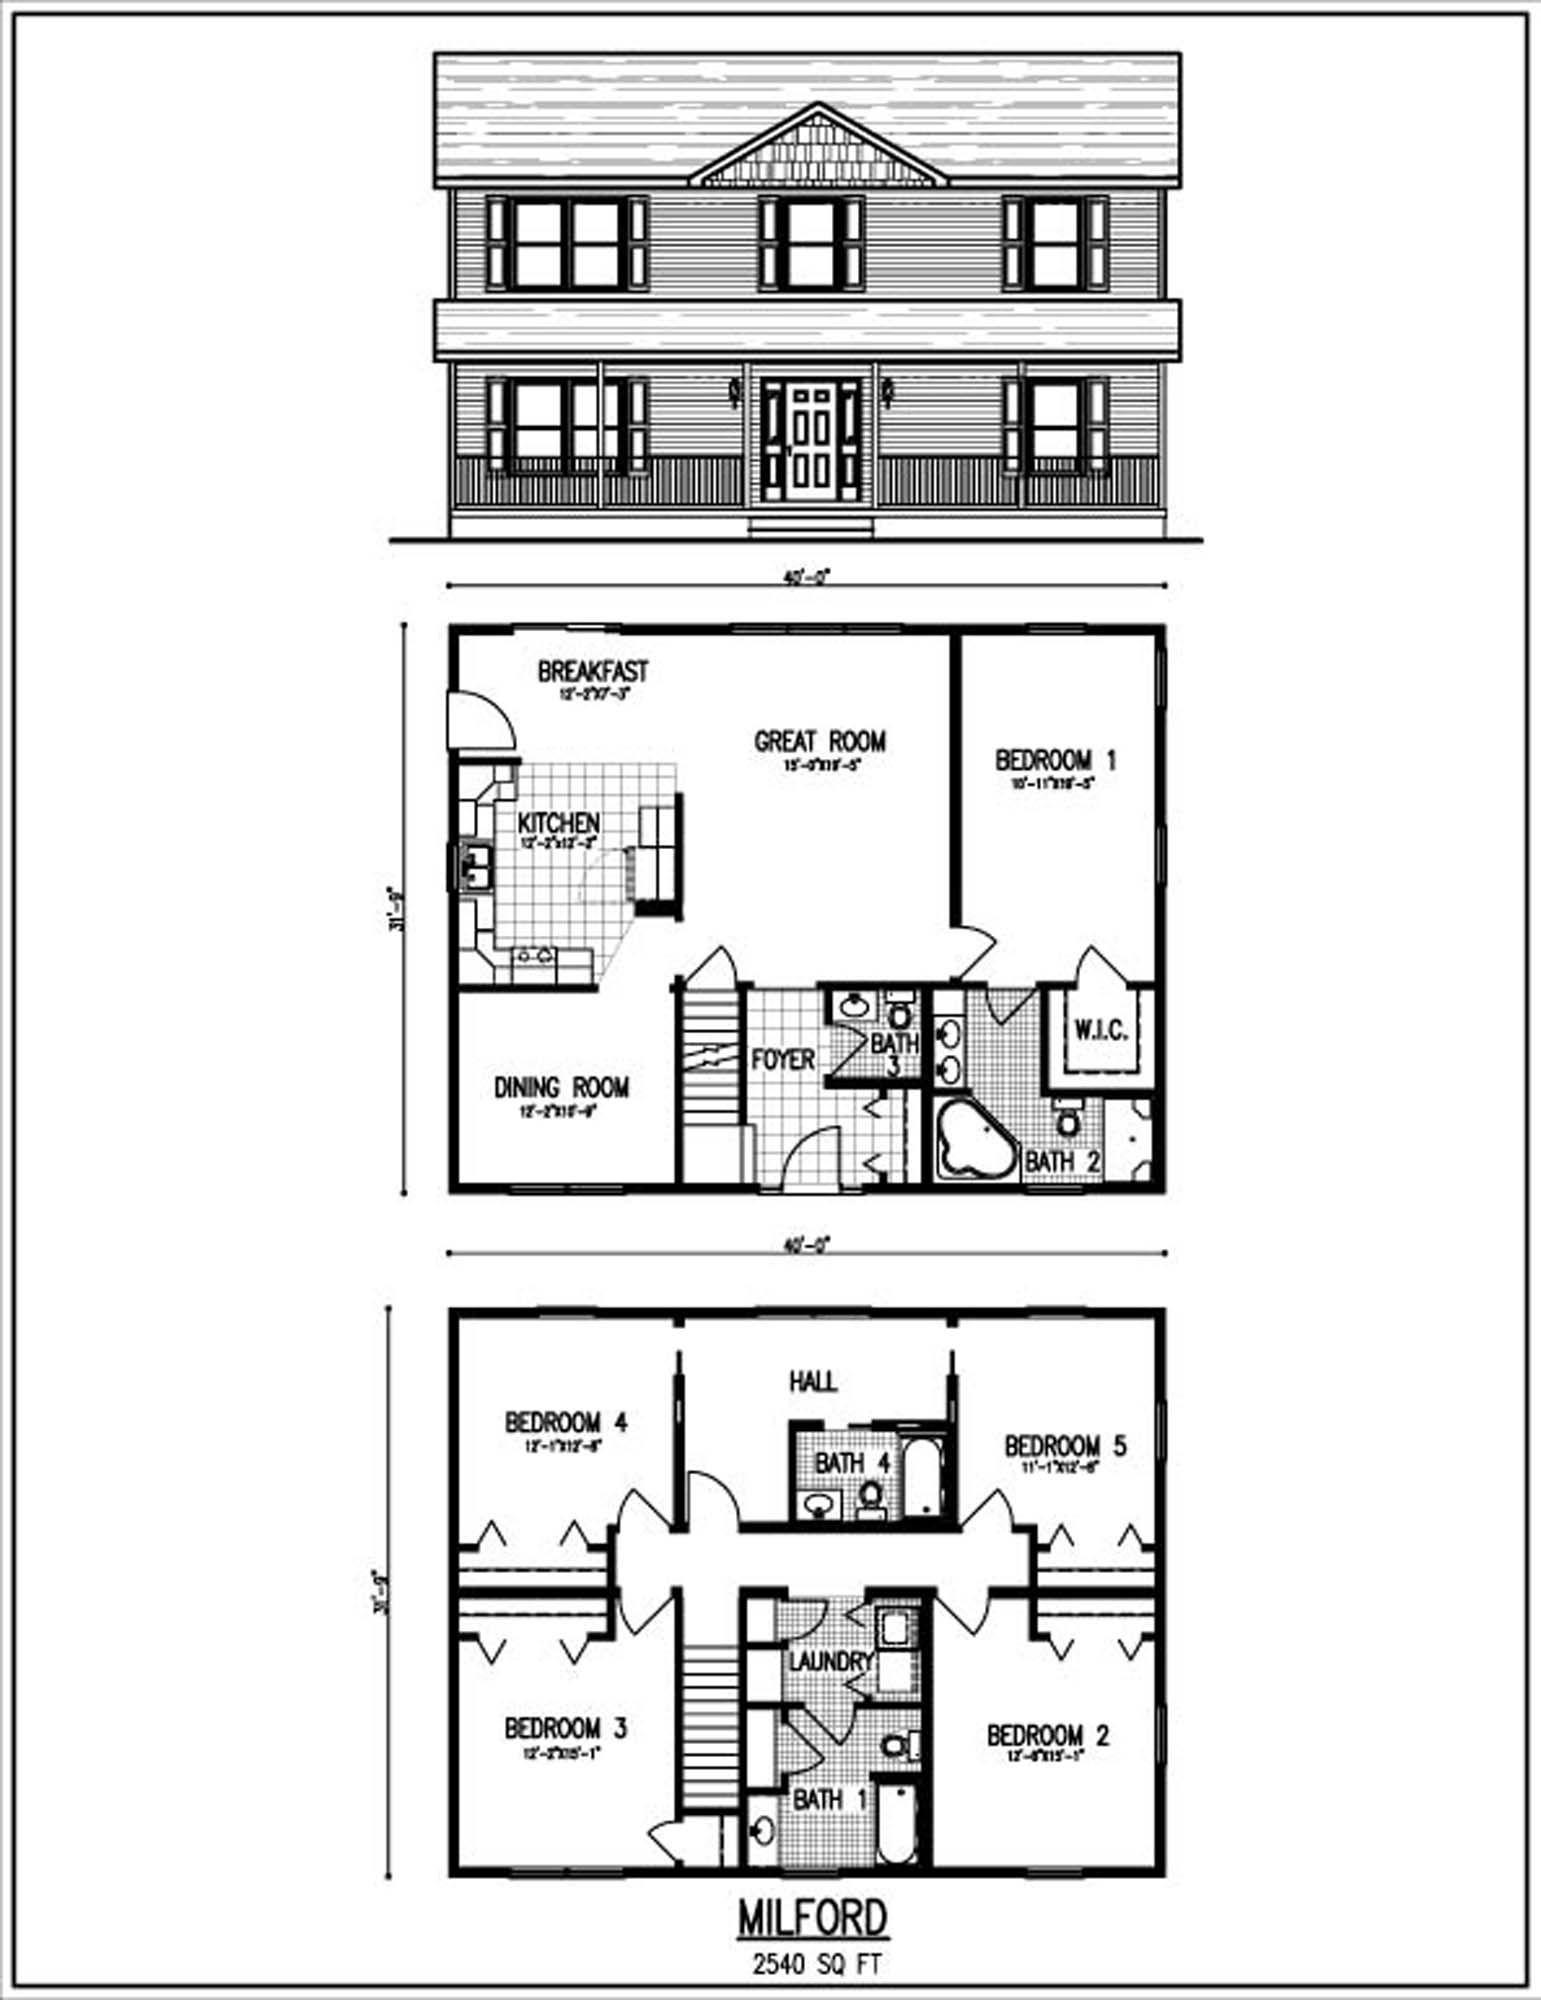 Beautiful 2 story house plans with upper level floor plan for 30x40 2 story house plans